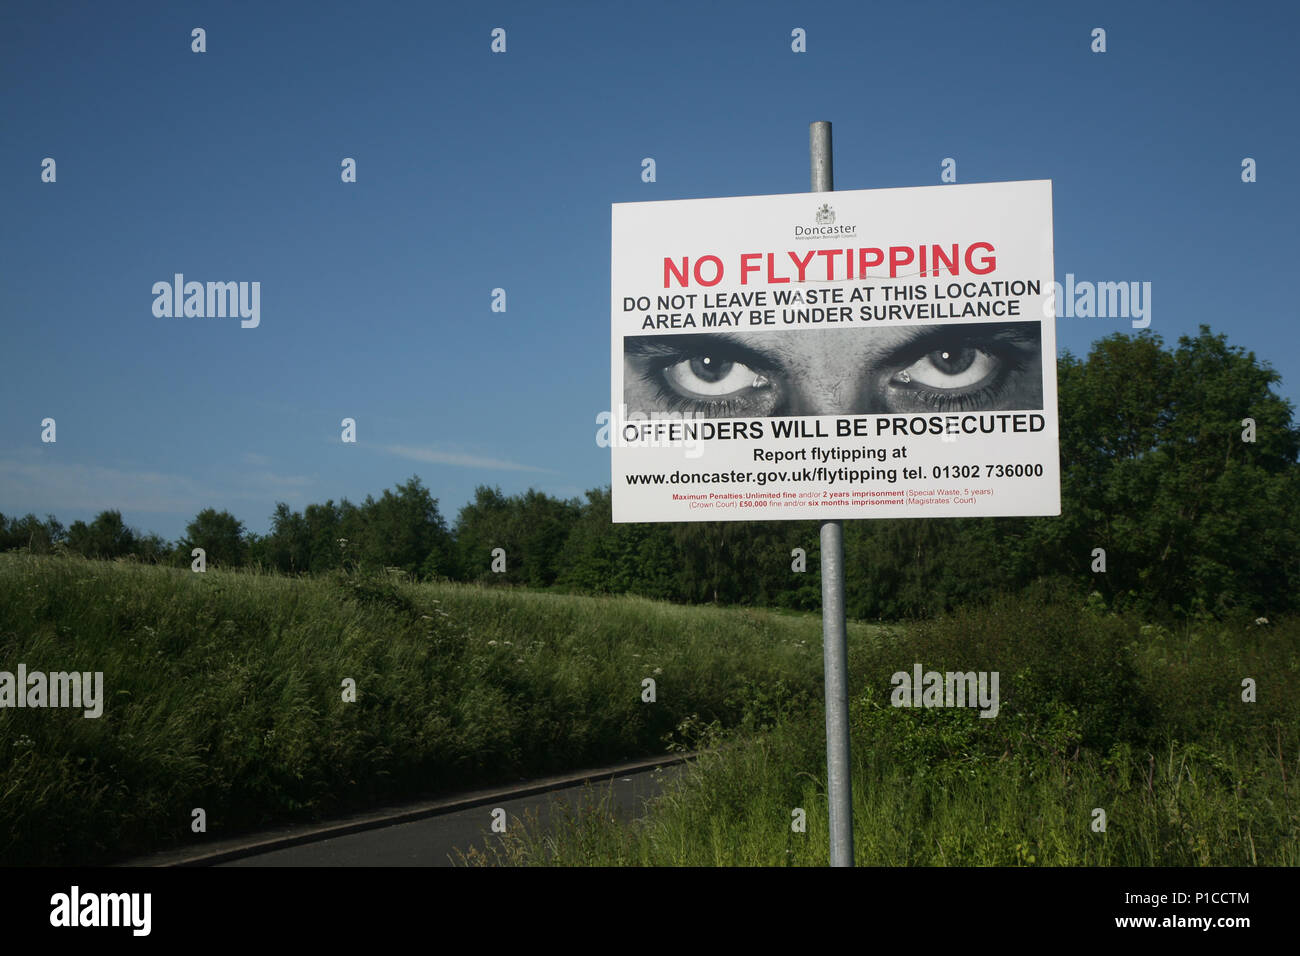 No fly tipping sign seen here near a very active illegal tipping place on Tickhill Road on the A631 on the outskirts of Bawtry, South Yorkshire, UK - Stock Image